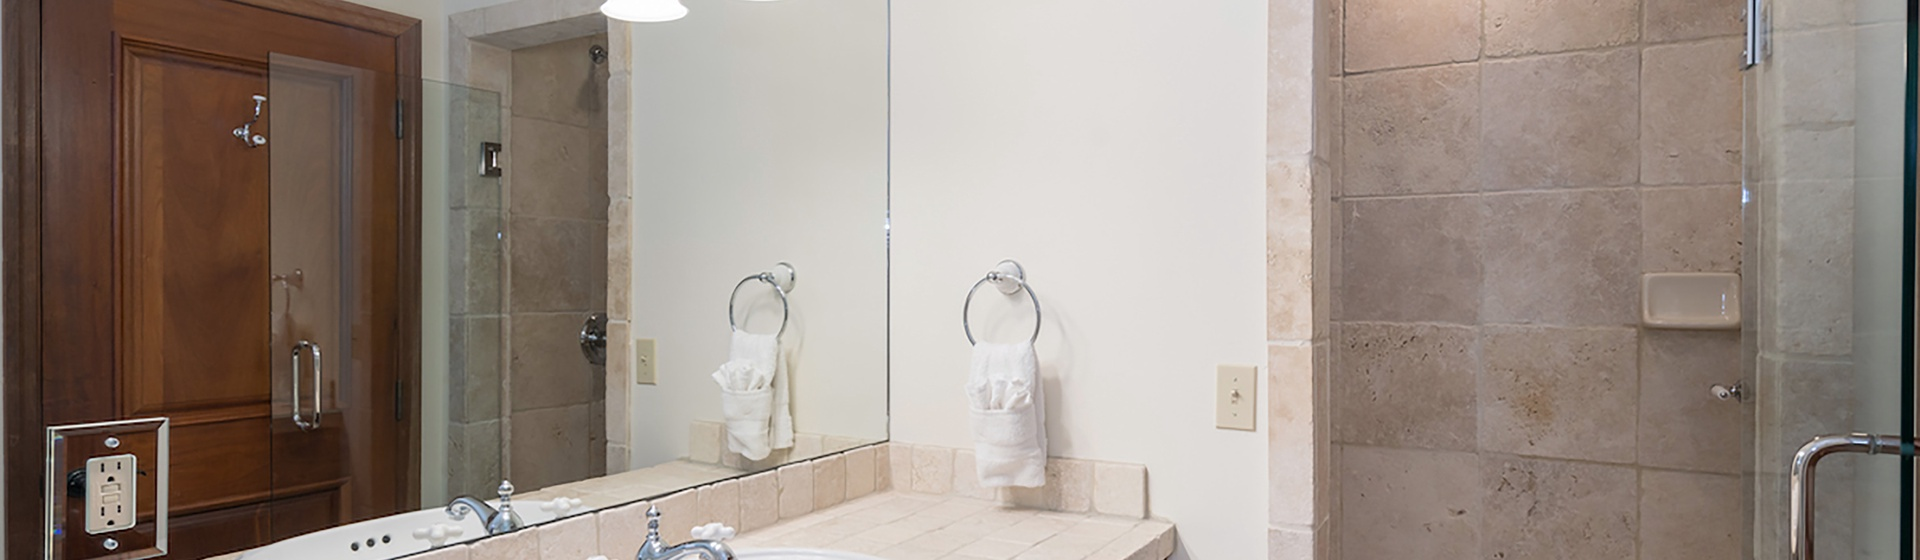 3.07-telluride-south-pacific-new-guest-bathroom-v12-Web.jpg